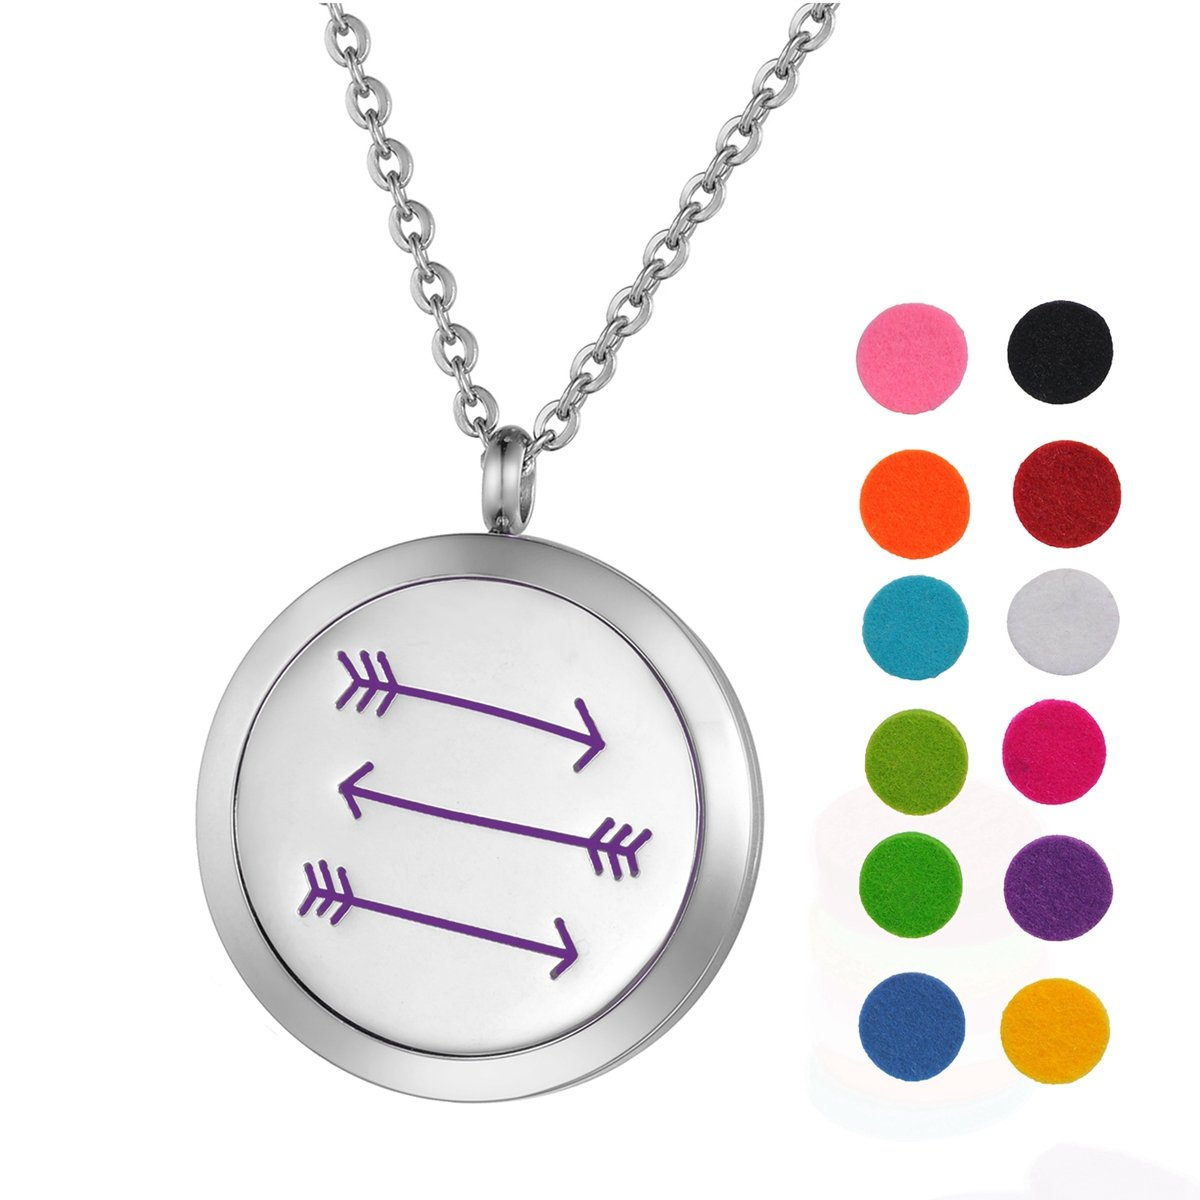 Aromatherapy Essential Oil Diffuser Necklace Stainless Steel Just Breathe Pendant Locket with 12 Pads 24 Chain Silver Tone Supreme glory Necklace1011A35